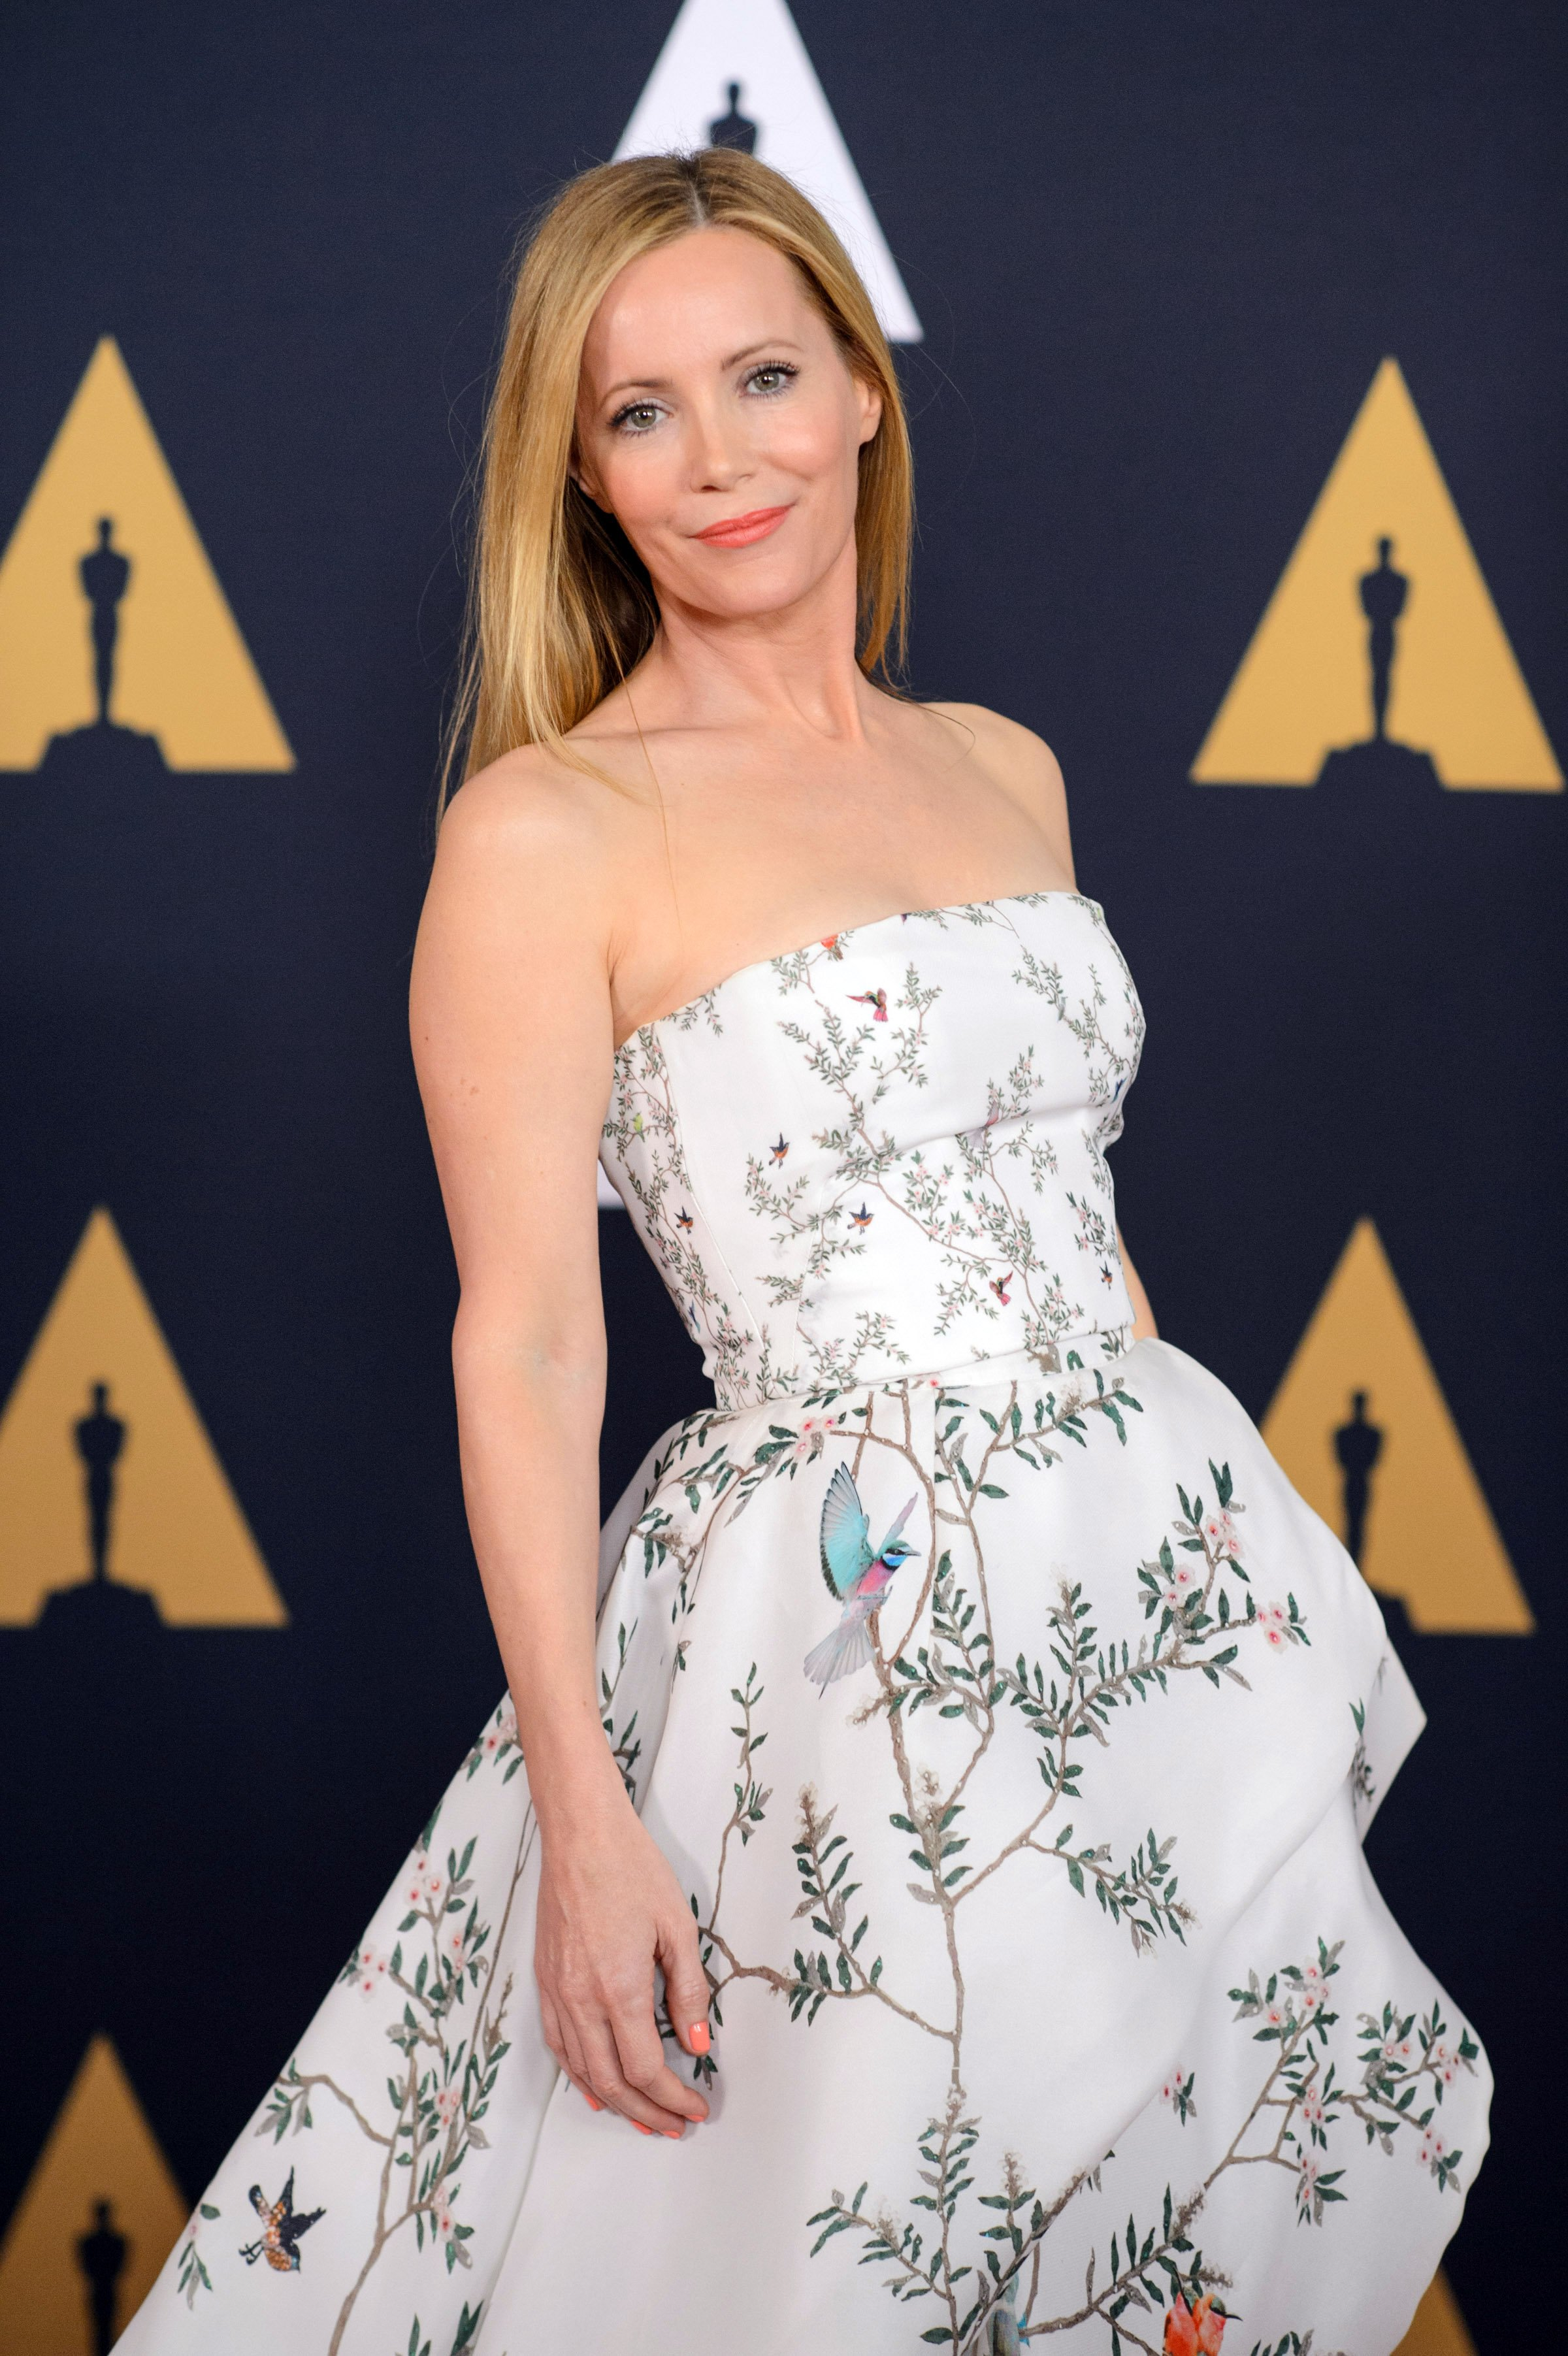 John Cho And Leslie Mann Will Host The 2017 Sci Tech Awards additionally Female Gazing At Sebastian Stan as well Why Canelo Alvarez Could Be Boxings Next Big Super Star moreover Disney Titles And Dates Wreck It Ralph Sequel together with Oscars 2017 Lin Manuel Miranda Reacts Moana. on oscar for best animated feature